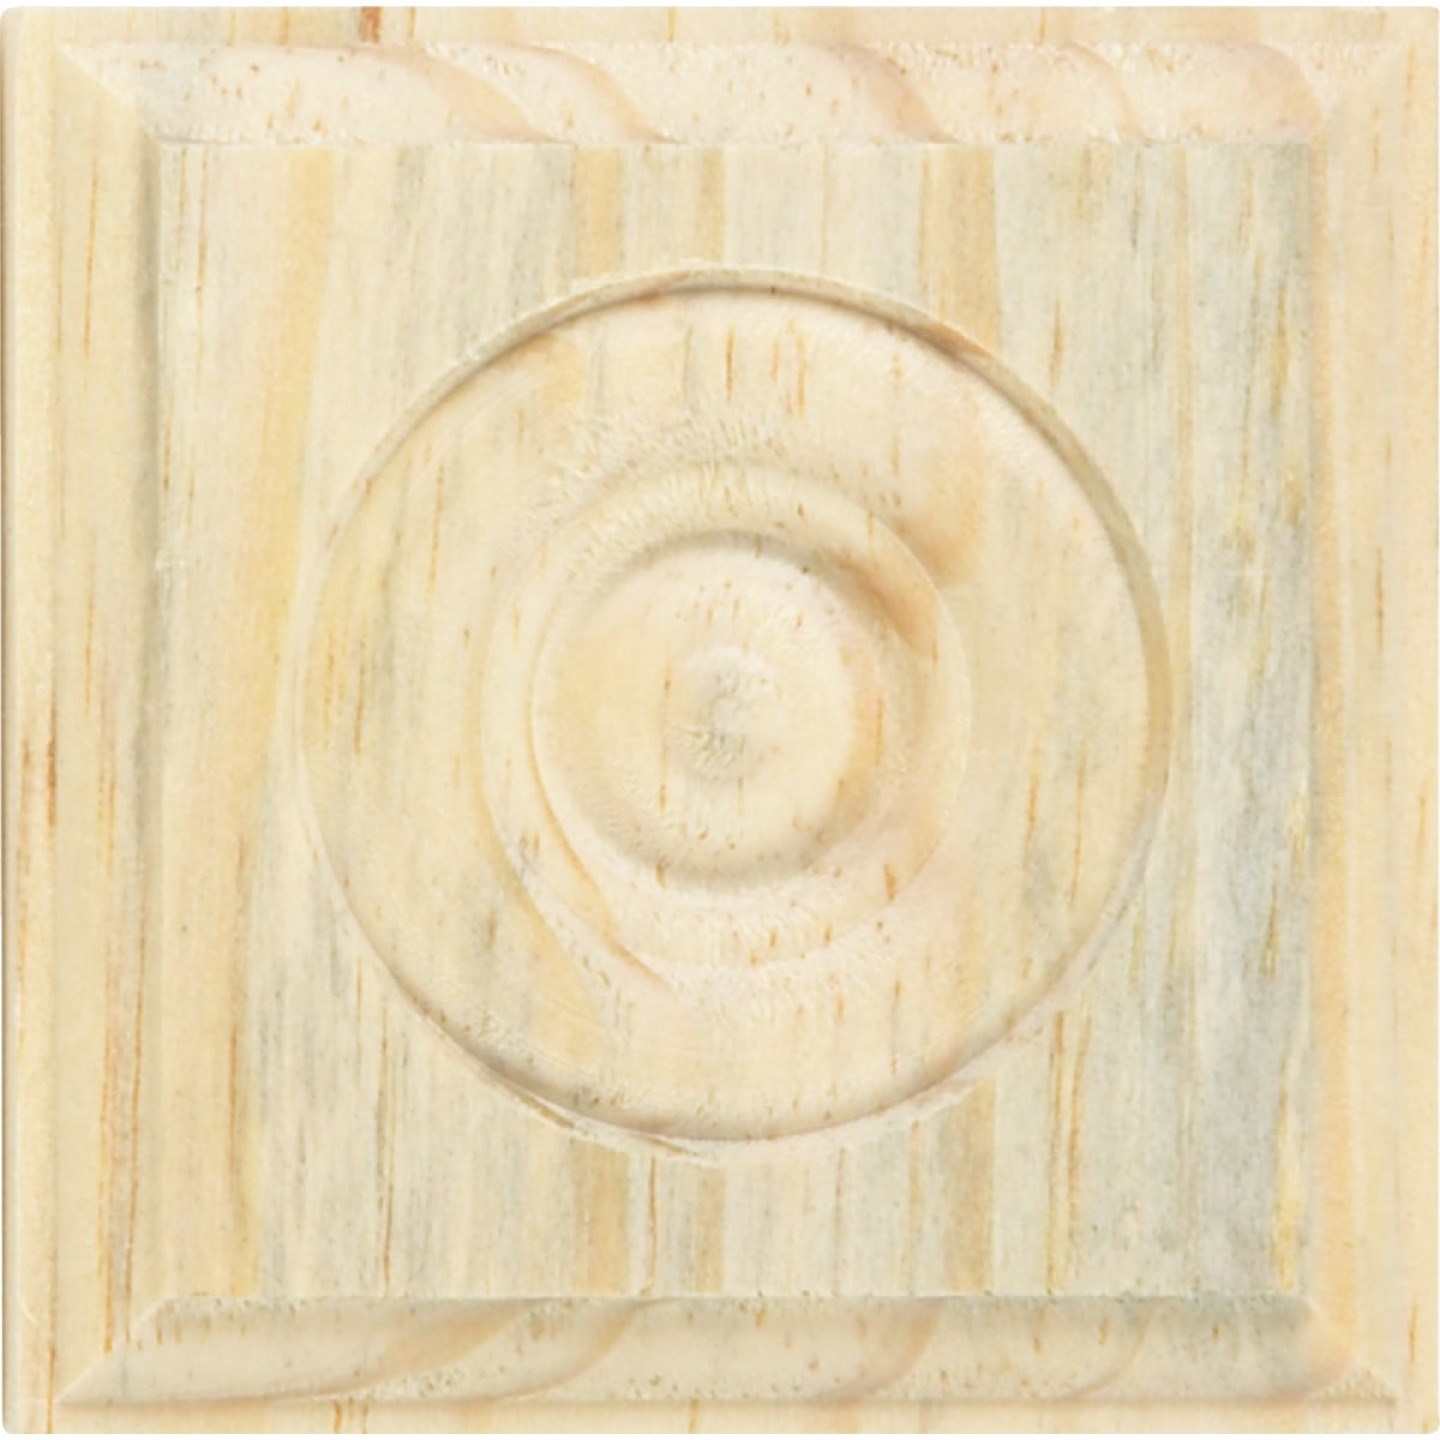 House of Fara 7/8 In. x 2-1/2 In. Unfinished Pine Rosette Image 3